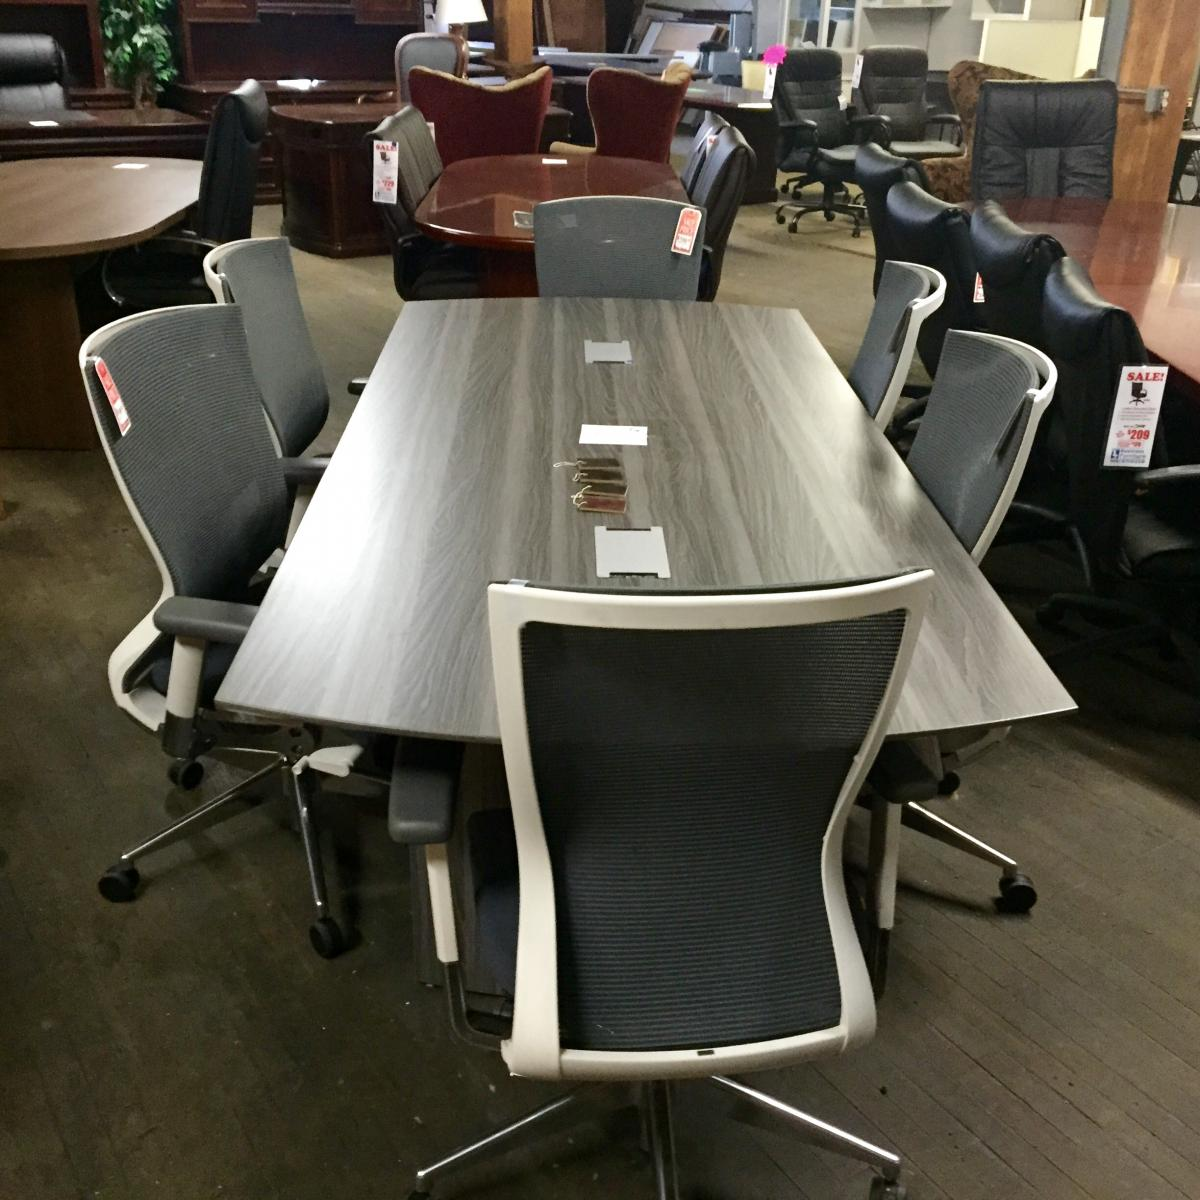 Mayline Medina Conference Table With Cherryman Idesk Orblanco Chairs Nashville Office Furniture